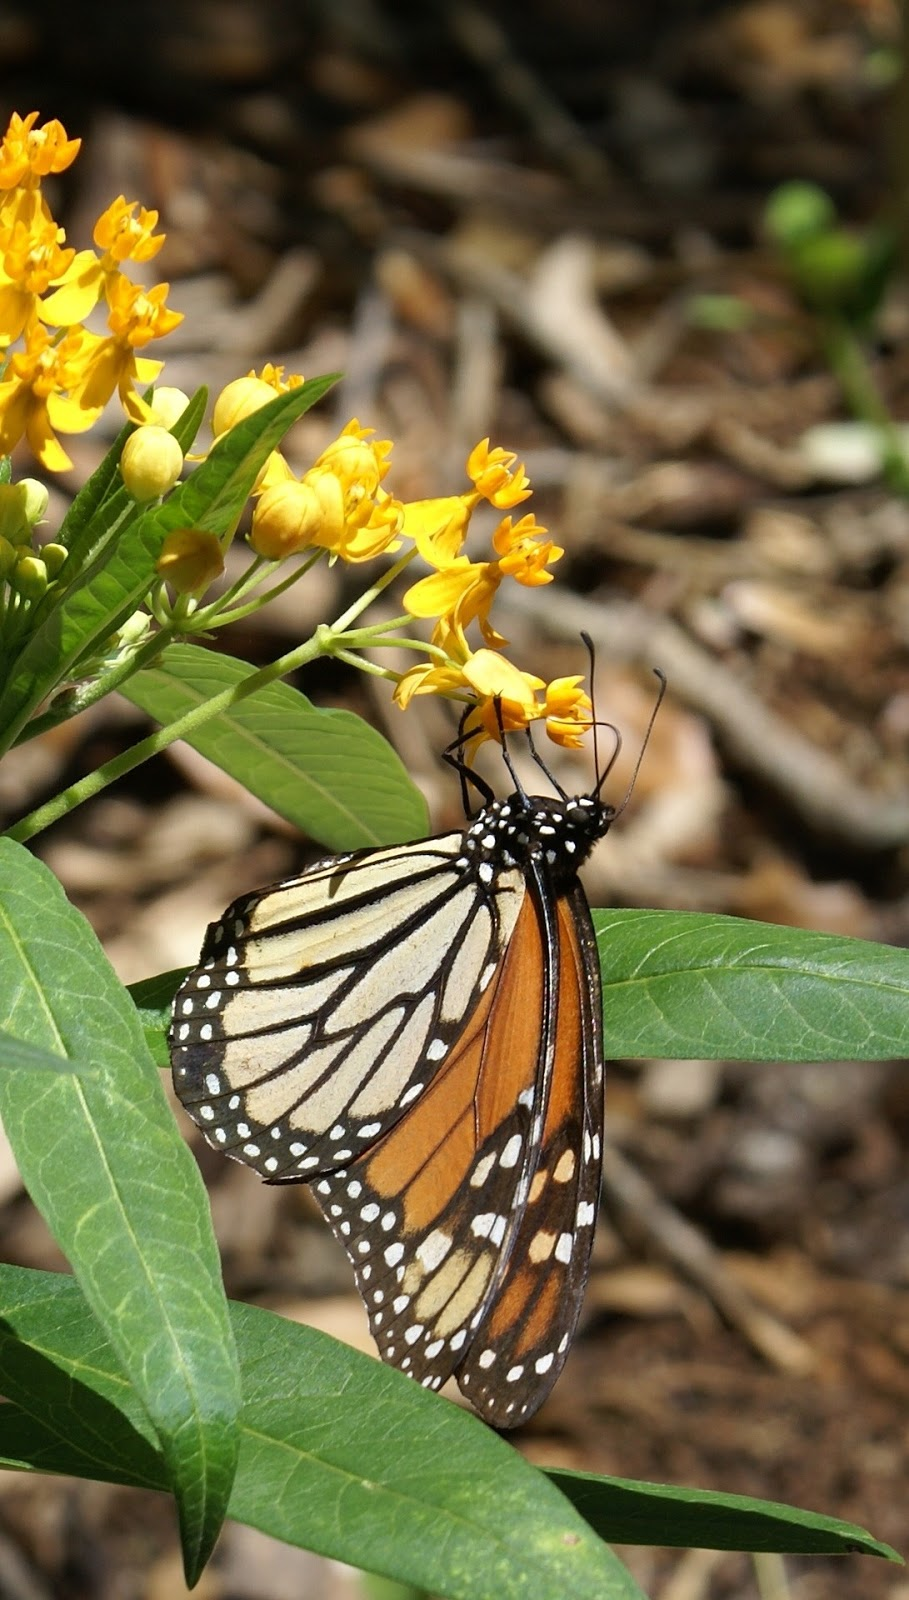 Picture of a monarch butterfly up close.